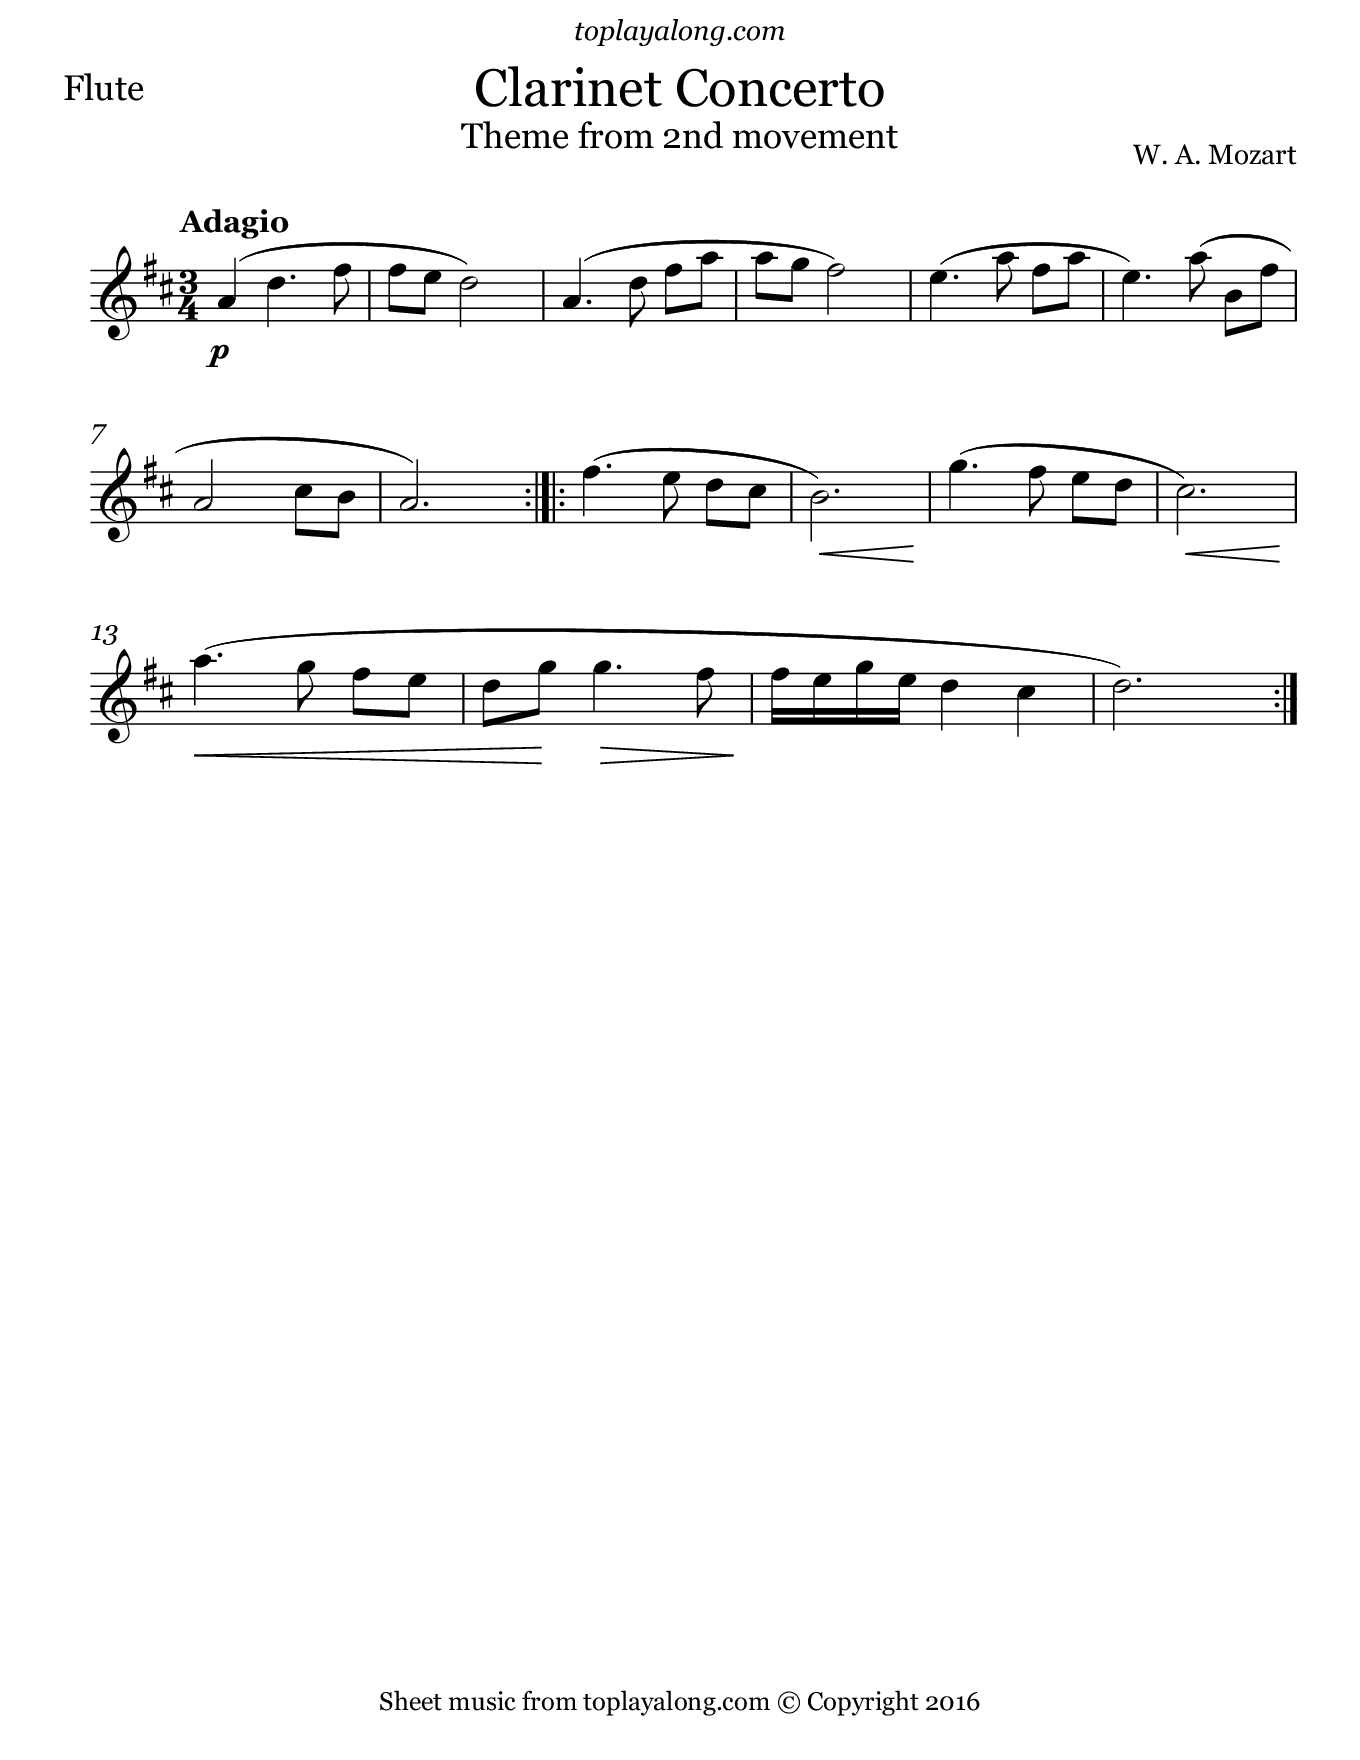 Clarinet Concerto 2nd mvt. (Theme) by Mozart. Sheet music for Flute, page 1.